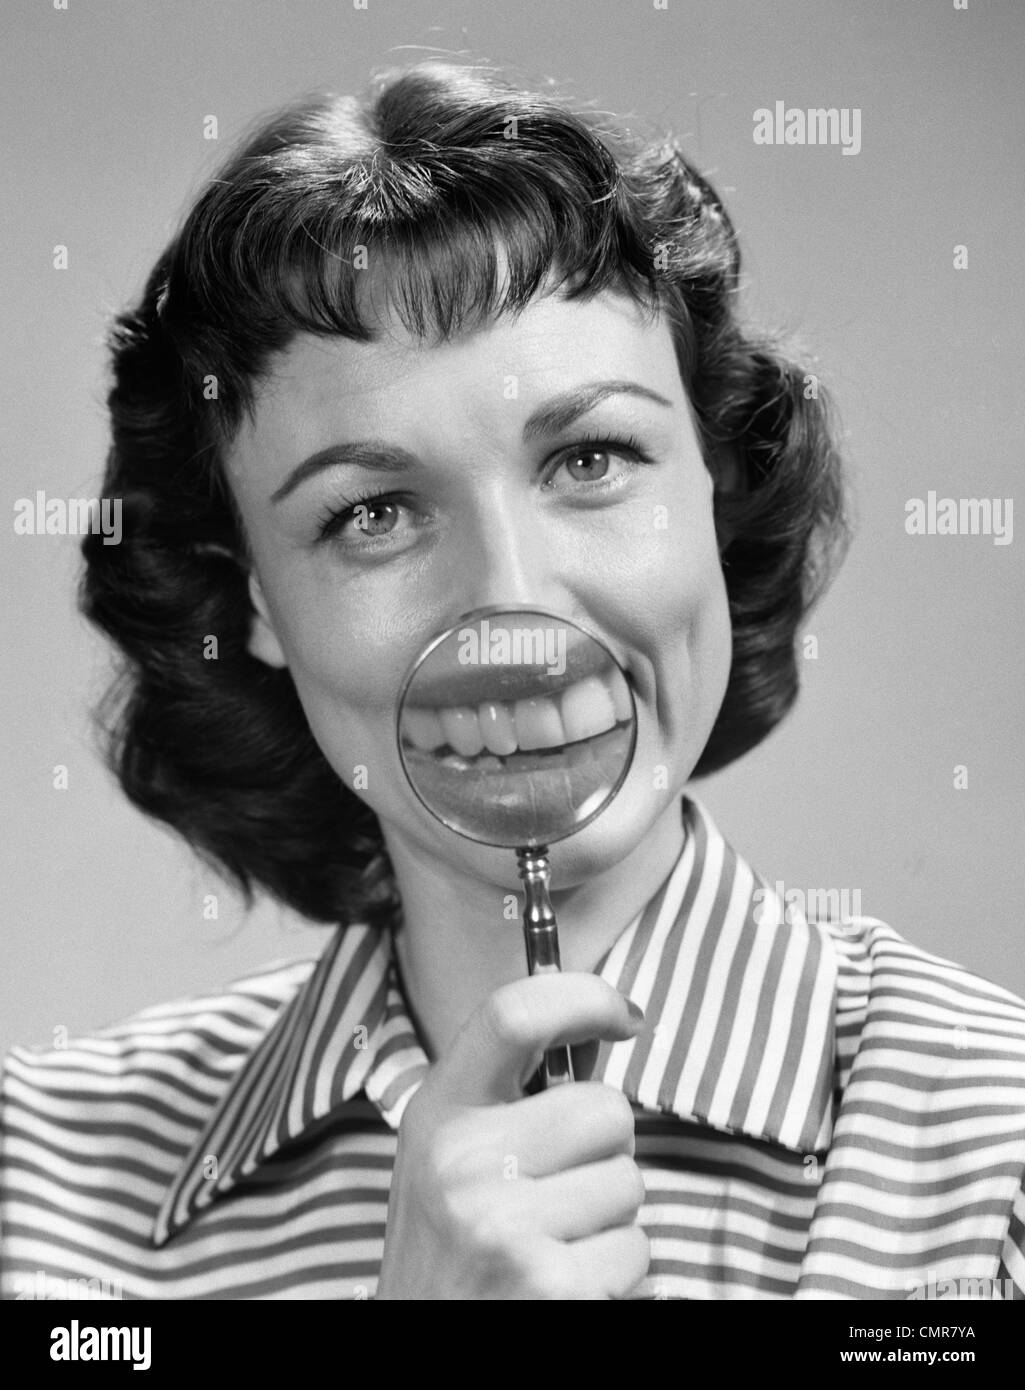 1950 SMILING PORTRAIT BRUNETTE WOMAN LOOKING AT CAMERA HOLDING Magnifying Glass à bouche Photo Stock